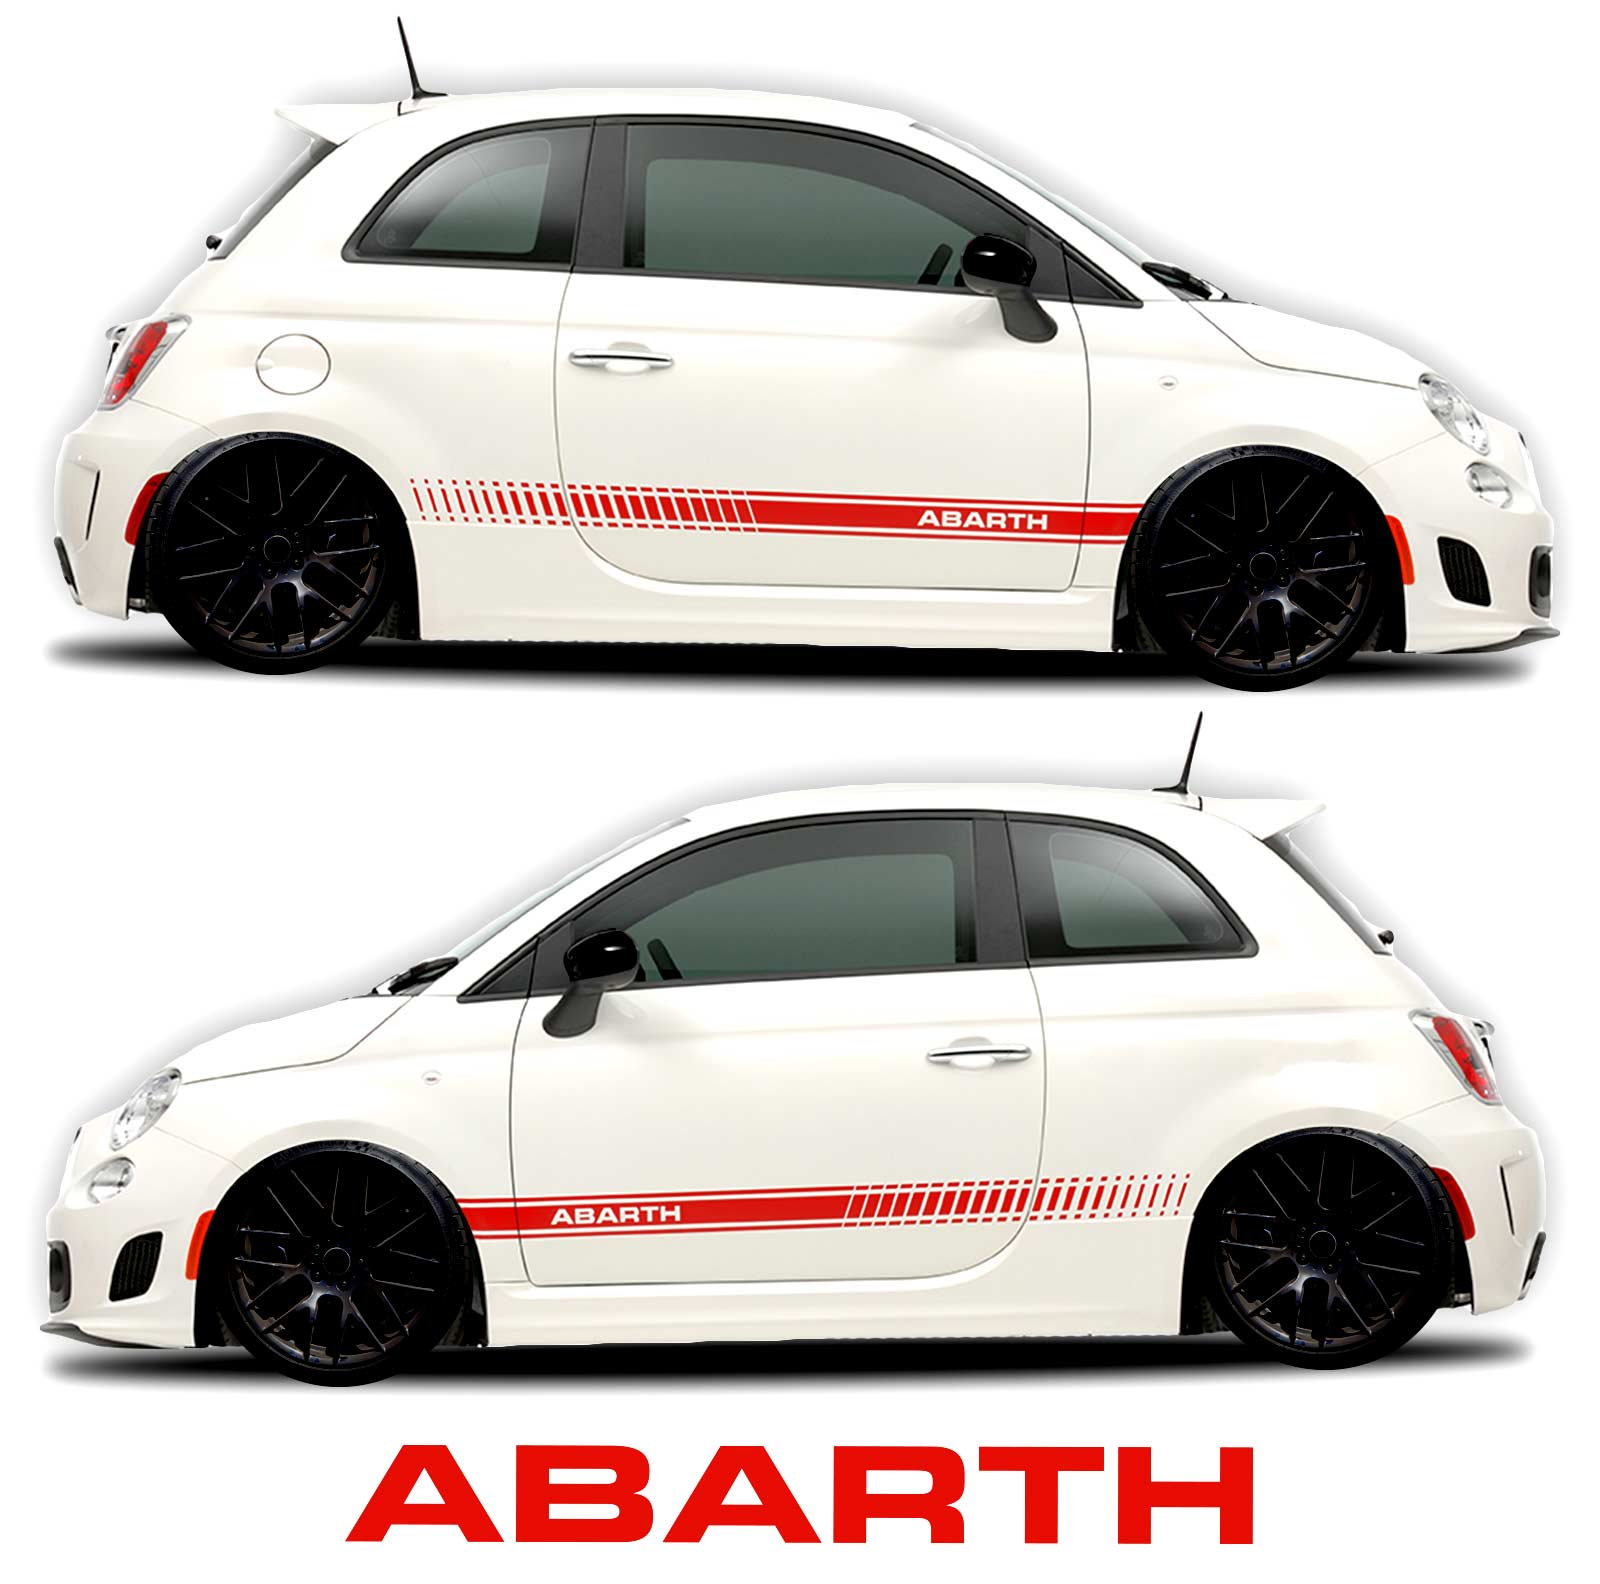 Fiat Abarth 500 rocker panel graphic decal red